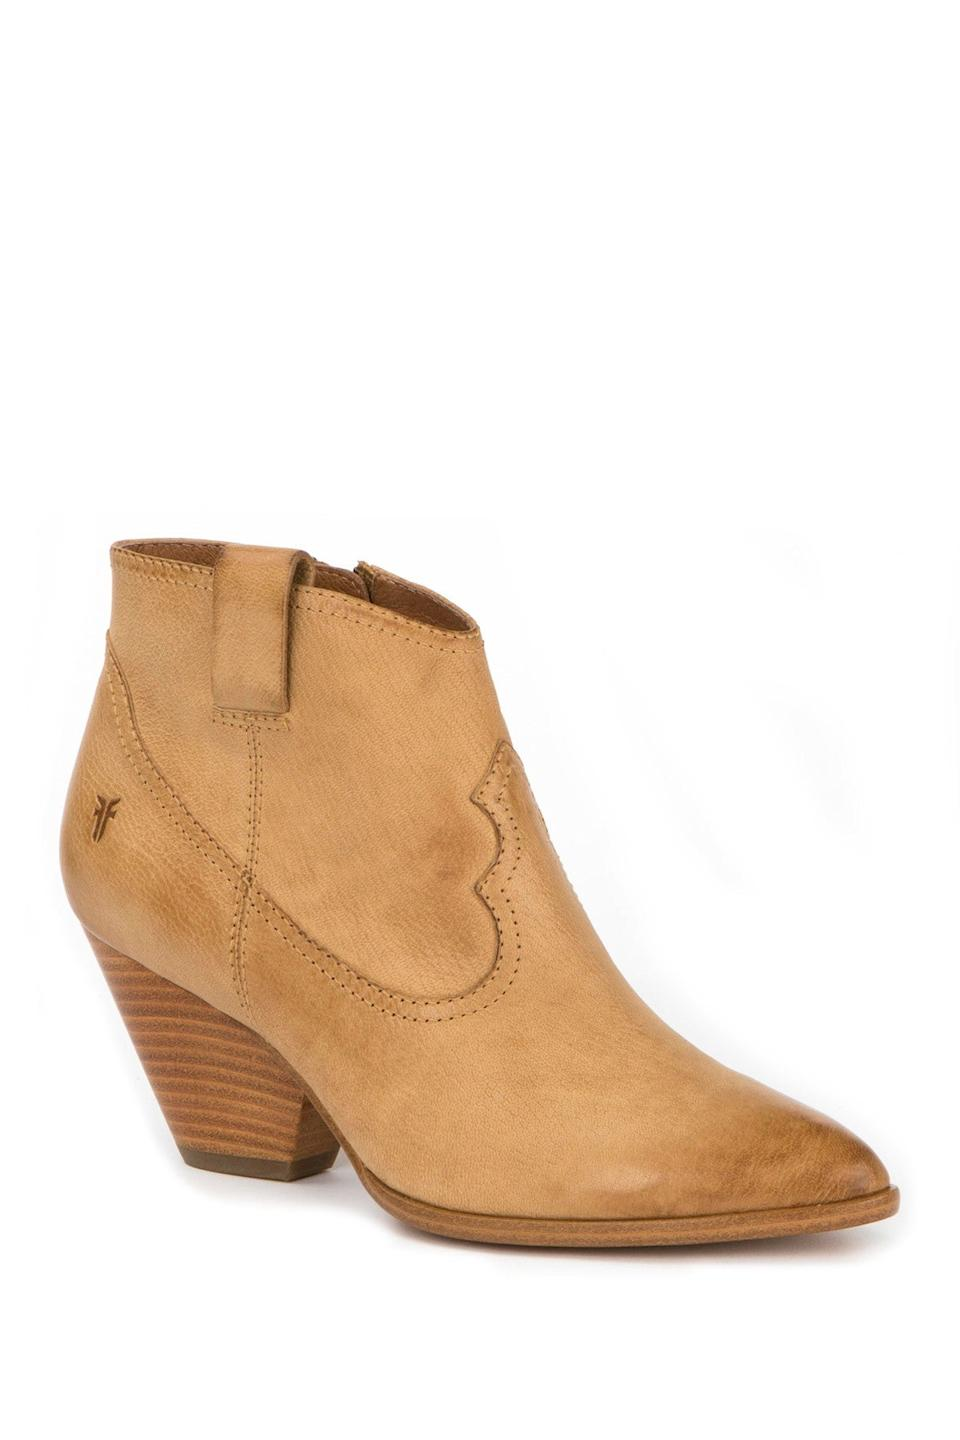 "<br><br><strong>Frye</strong> Reina Leather Bootie, $, available at <a href=""https://go.skimresources.com/?id=30283X879131&url=https%3A%2F%2Fwww.nordstromrack.com%2Fshop%2Fproduct%2F2299855%2Ffrye-reina-leather-bootie"" rel=""nofollow noopener"" target=""_blank"" data-ylk=""slk:Nordstrom Rack"" class=""link rapid-noclick-resp"">Nordstrom Rack</a>"